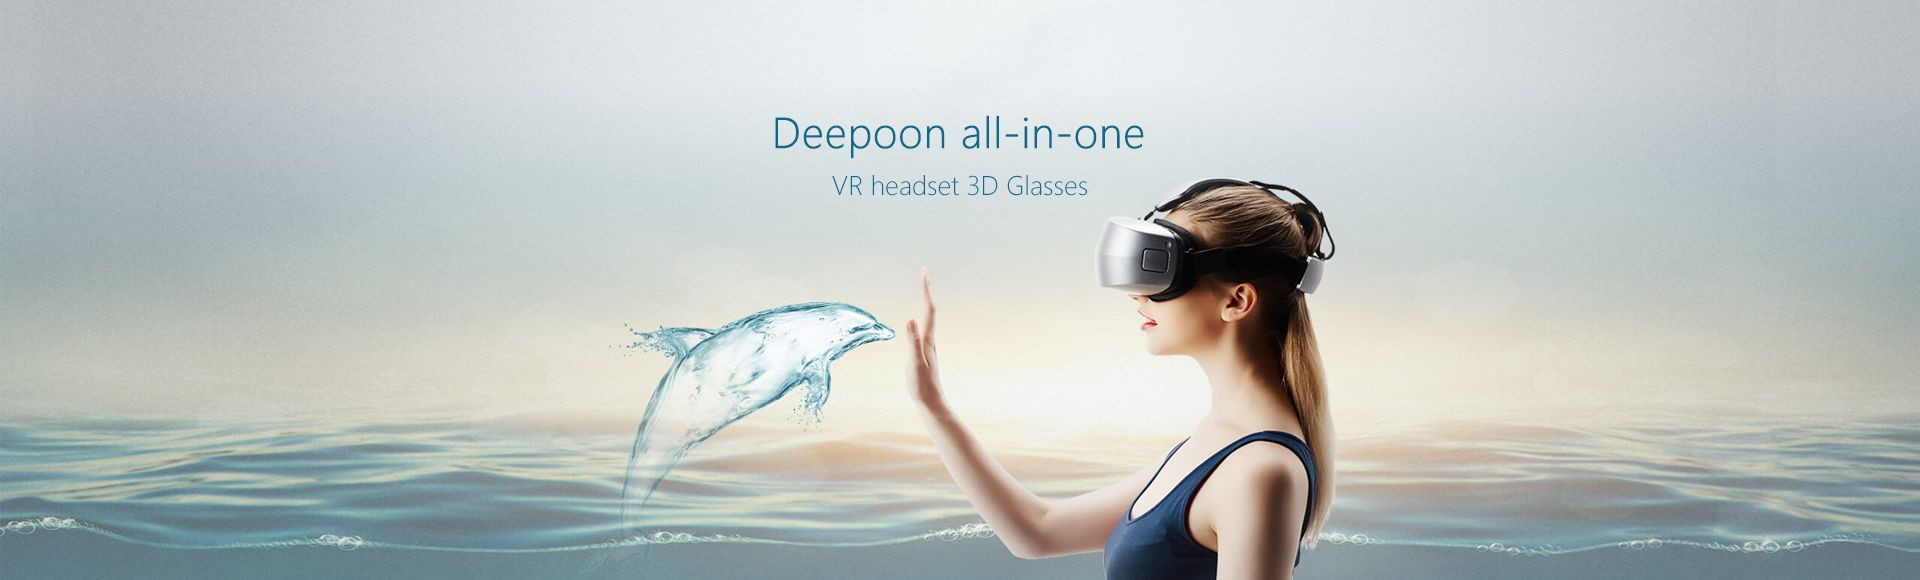 Deepoon M2 All-in-one VR Headset -  Virtual Reality 3D Glasses 96 FOV 5.7 Inch 2K AMOLED Display Immersive Game Video Player